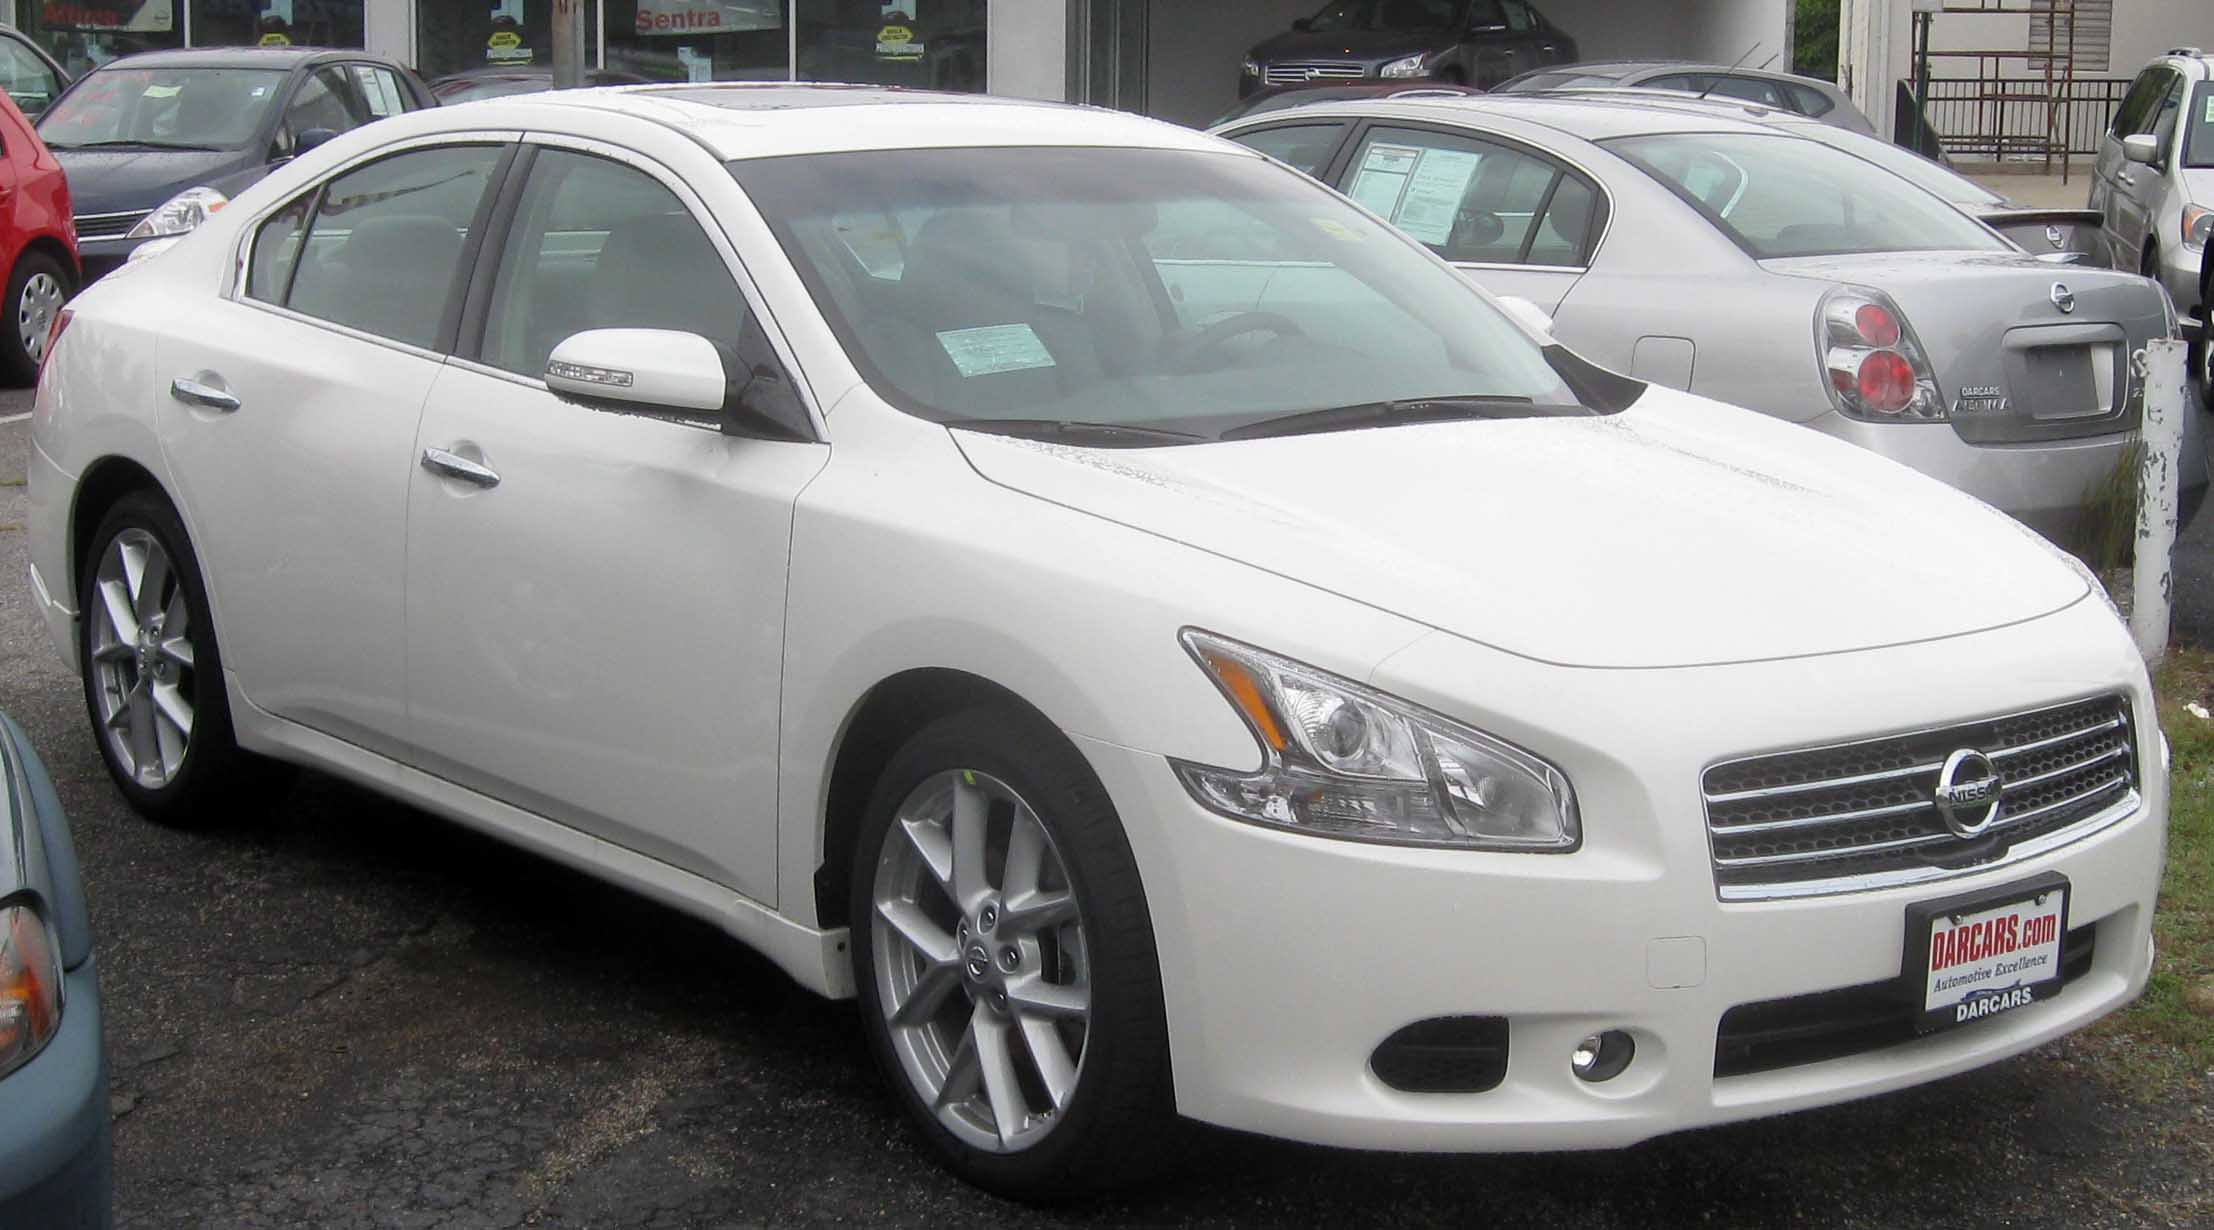 Exceptional File:2009 Nissan Maxima SV